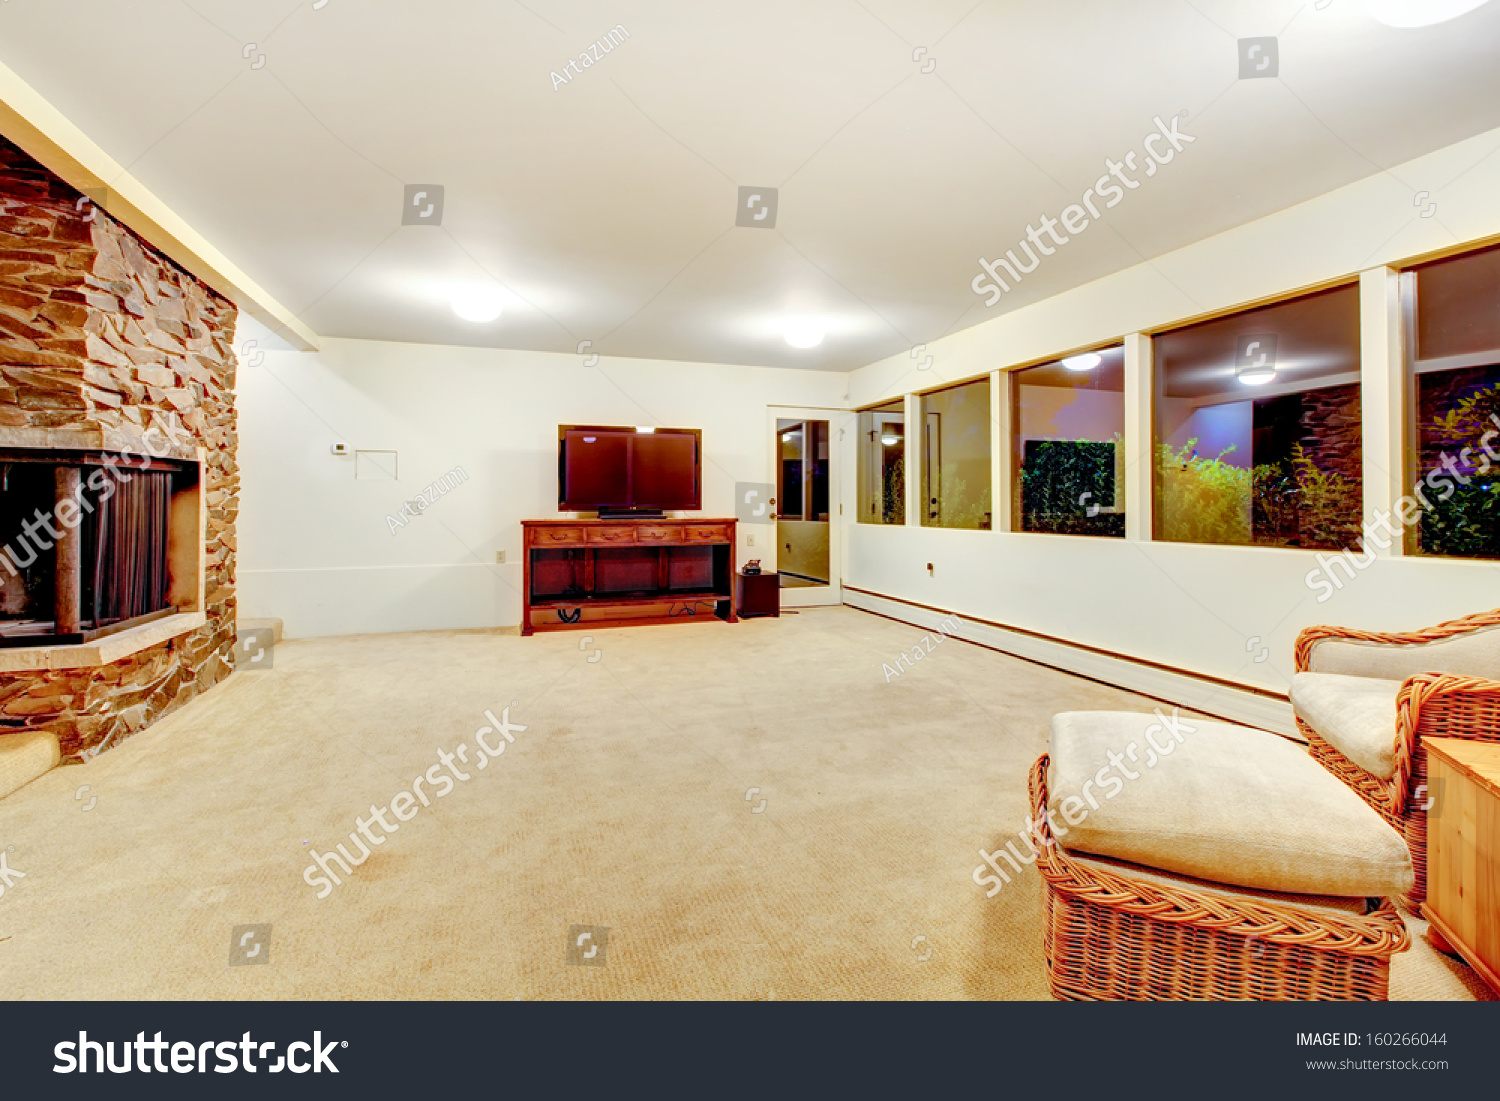 Huge Empty Recreation Room Fireplace Tv Stock Photo (Safe to Use ...